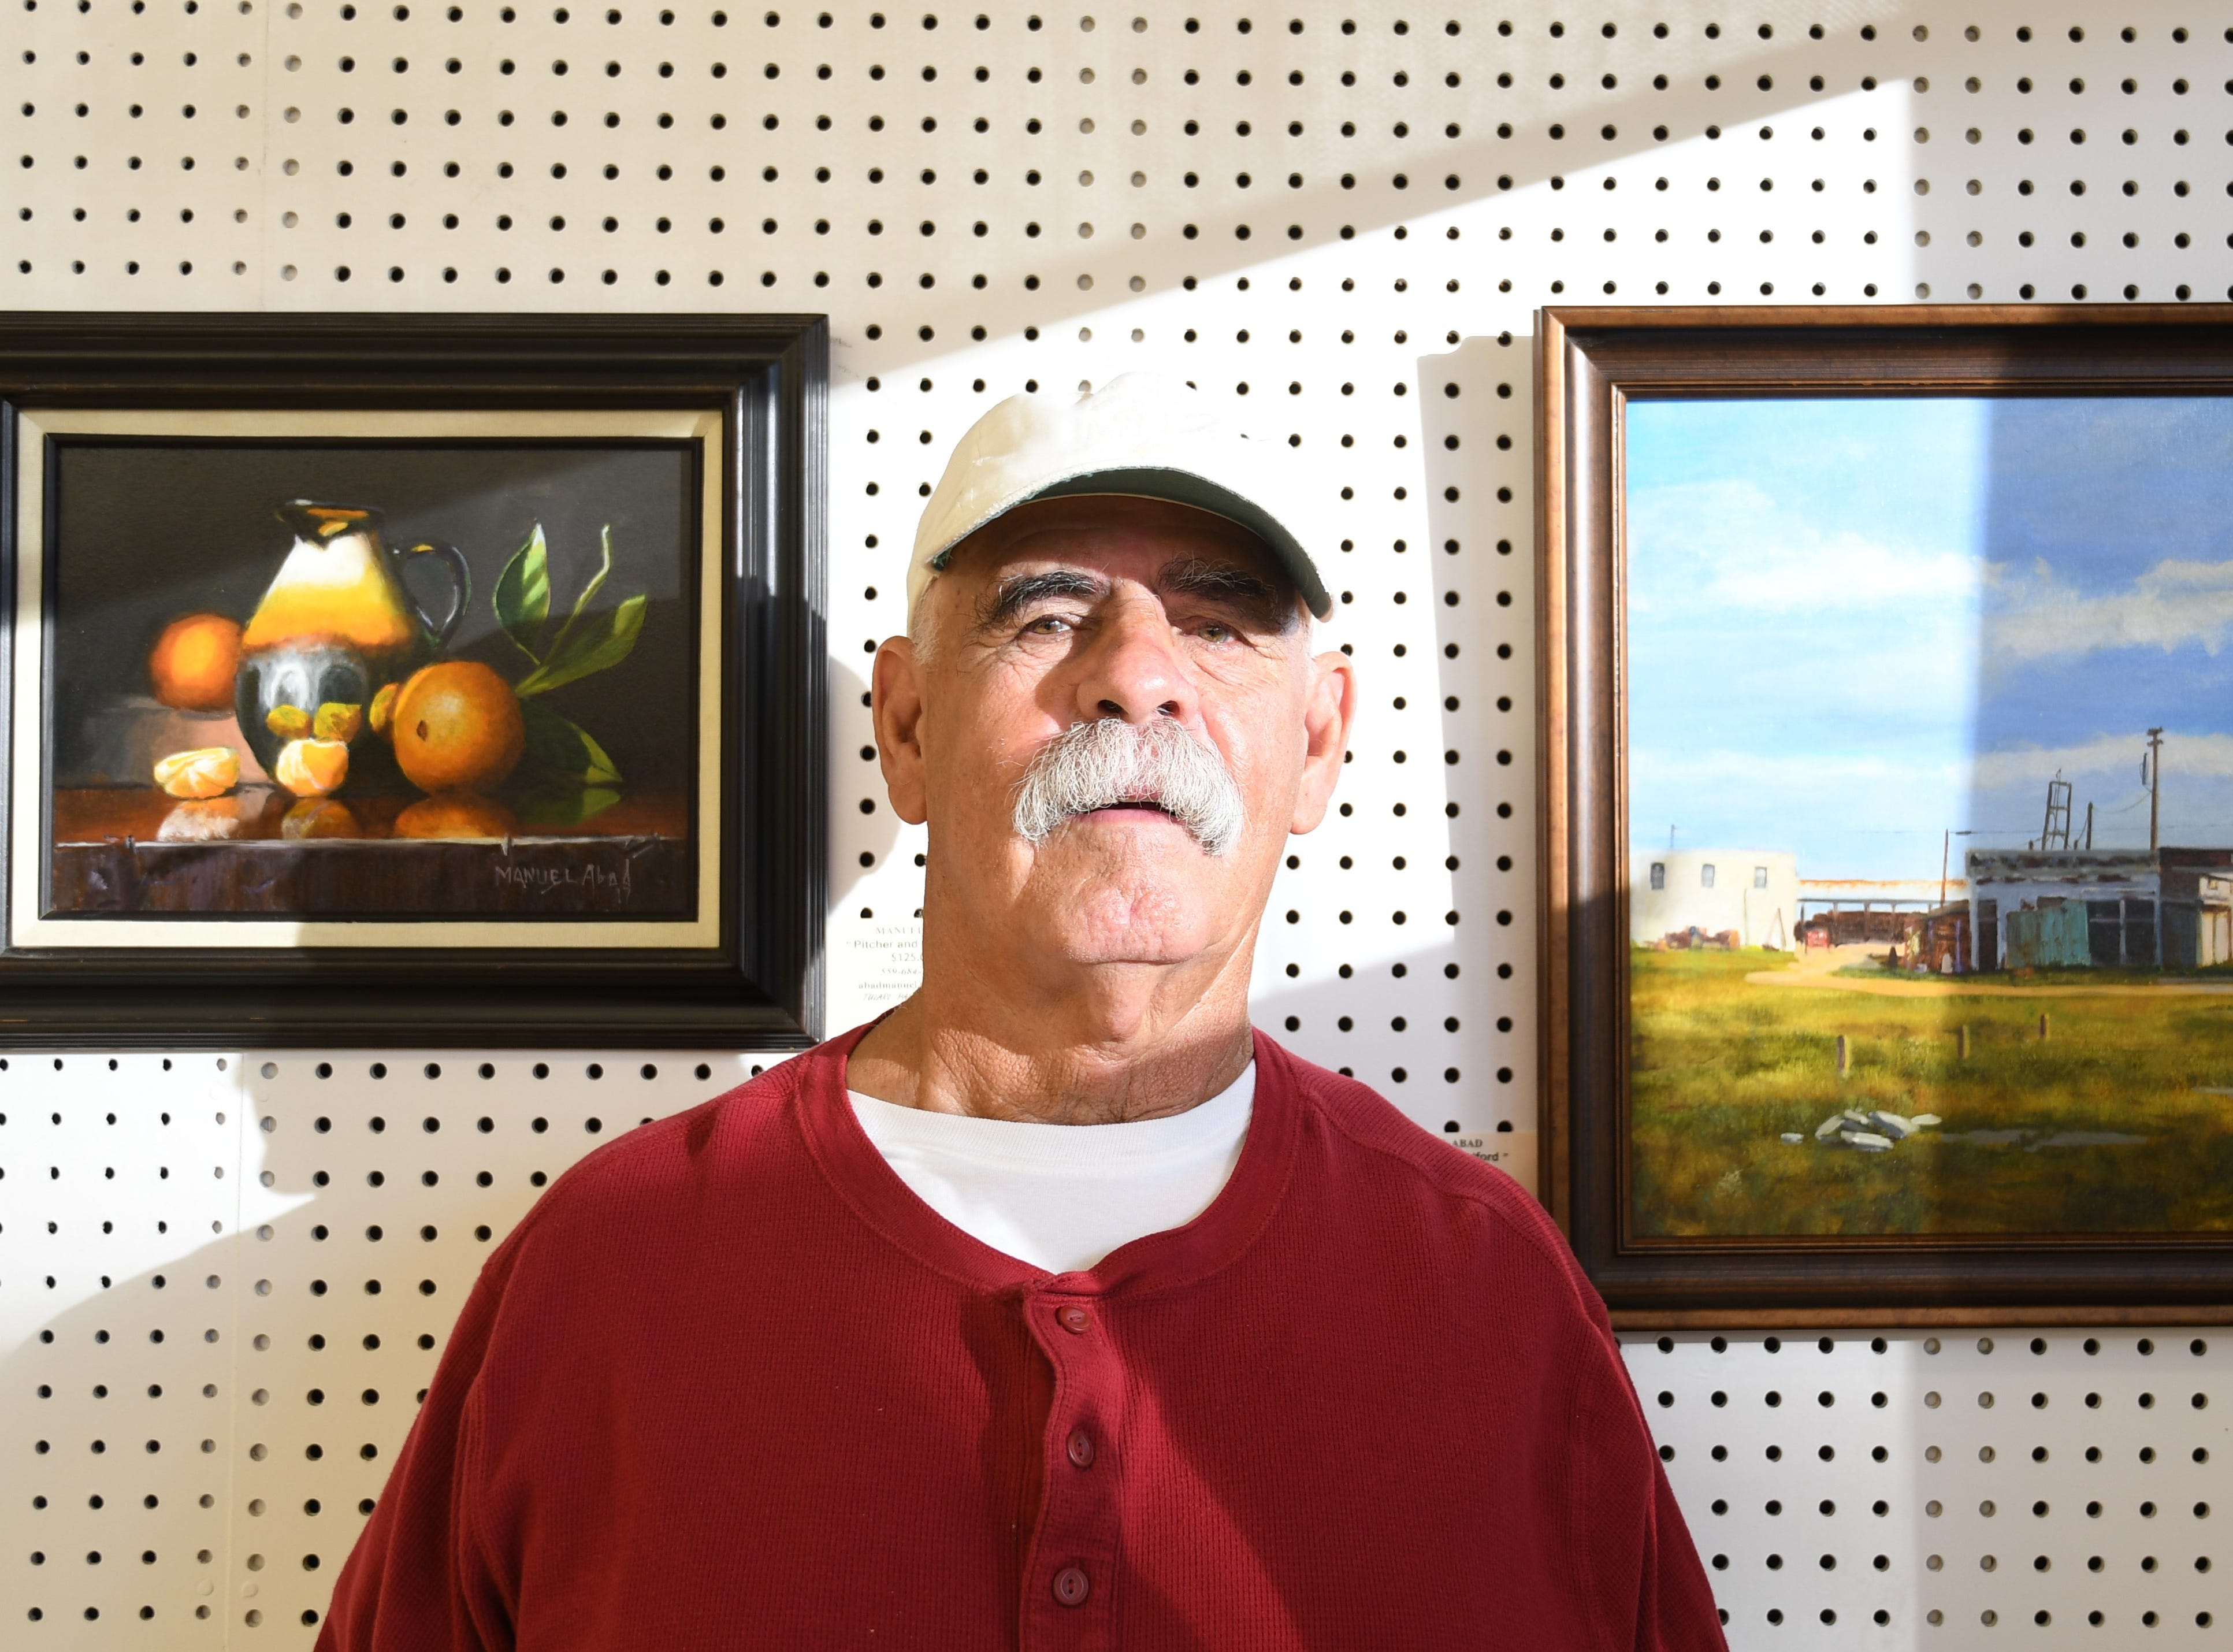 Manuel Abad is a member of the Palette Club, a painters collective showing work at Visalia Arts Consortium this month